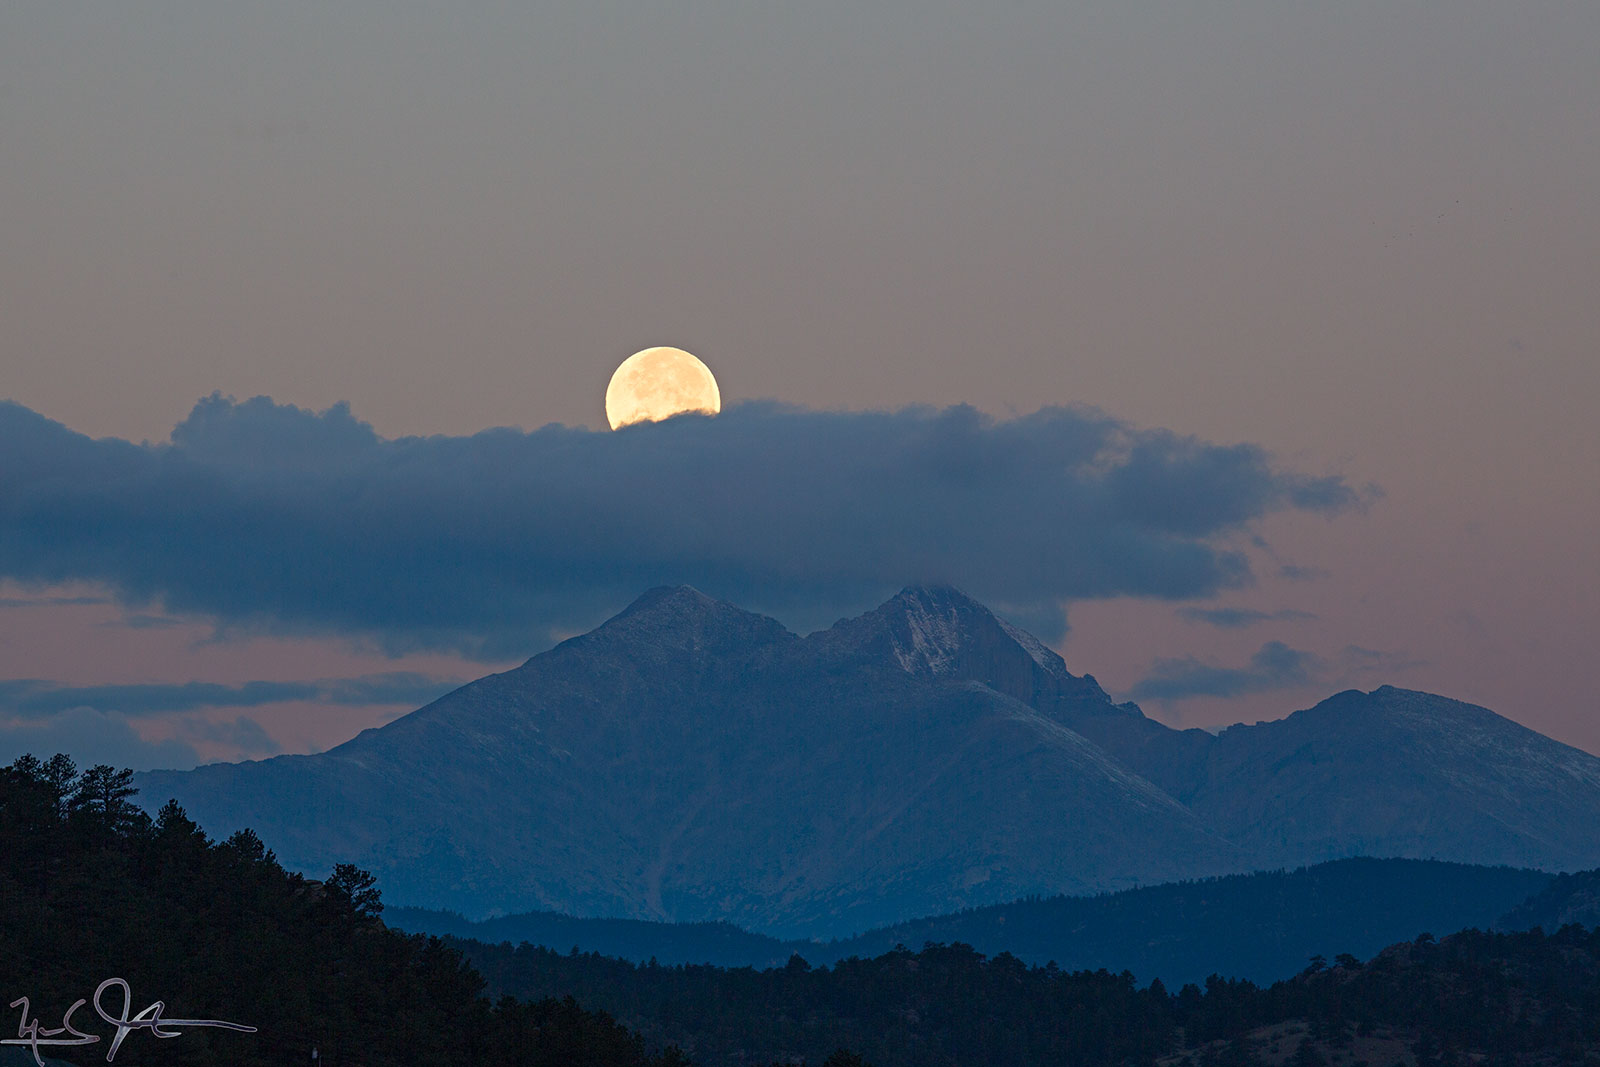 6:53 AM:  Last glimpse of the Harvest Moon before it is hidden behind a cloud bank hovering over Mt. Meeker and Long's Peak.  Official moonset didn't occur until 40 minutes later at 7:31 AM.